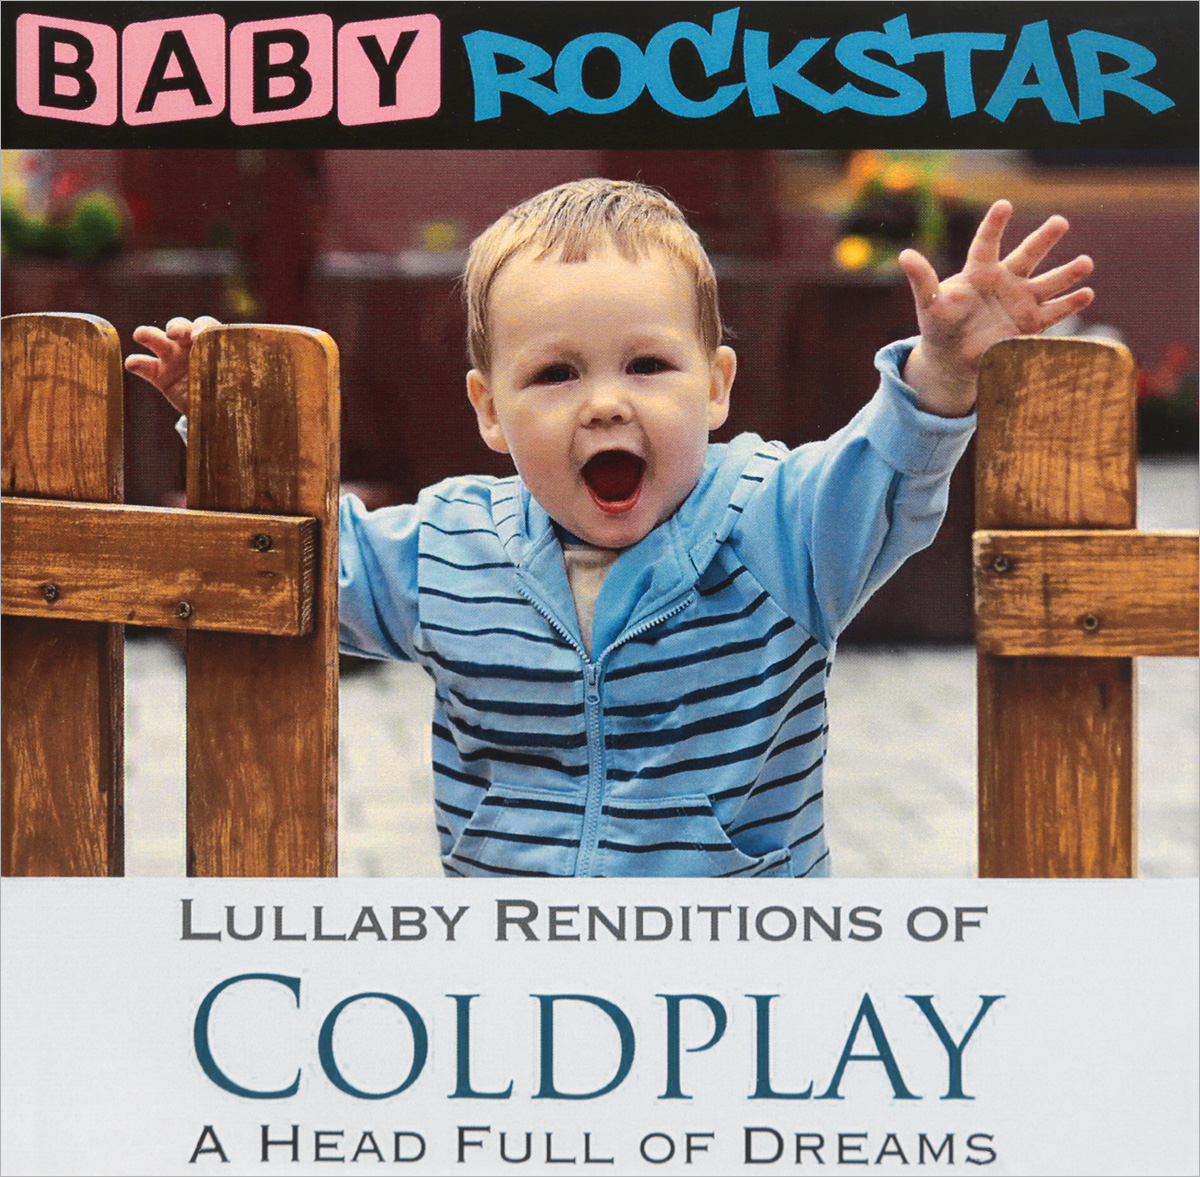 Coldplay Baby Rockstar. Lullaby Renditions Of Coldplay. A Head Full Of Dreams dreams of lilacs